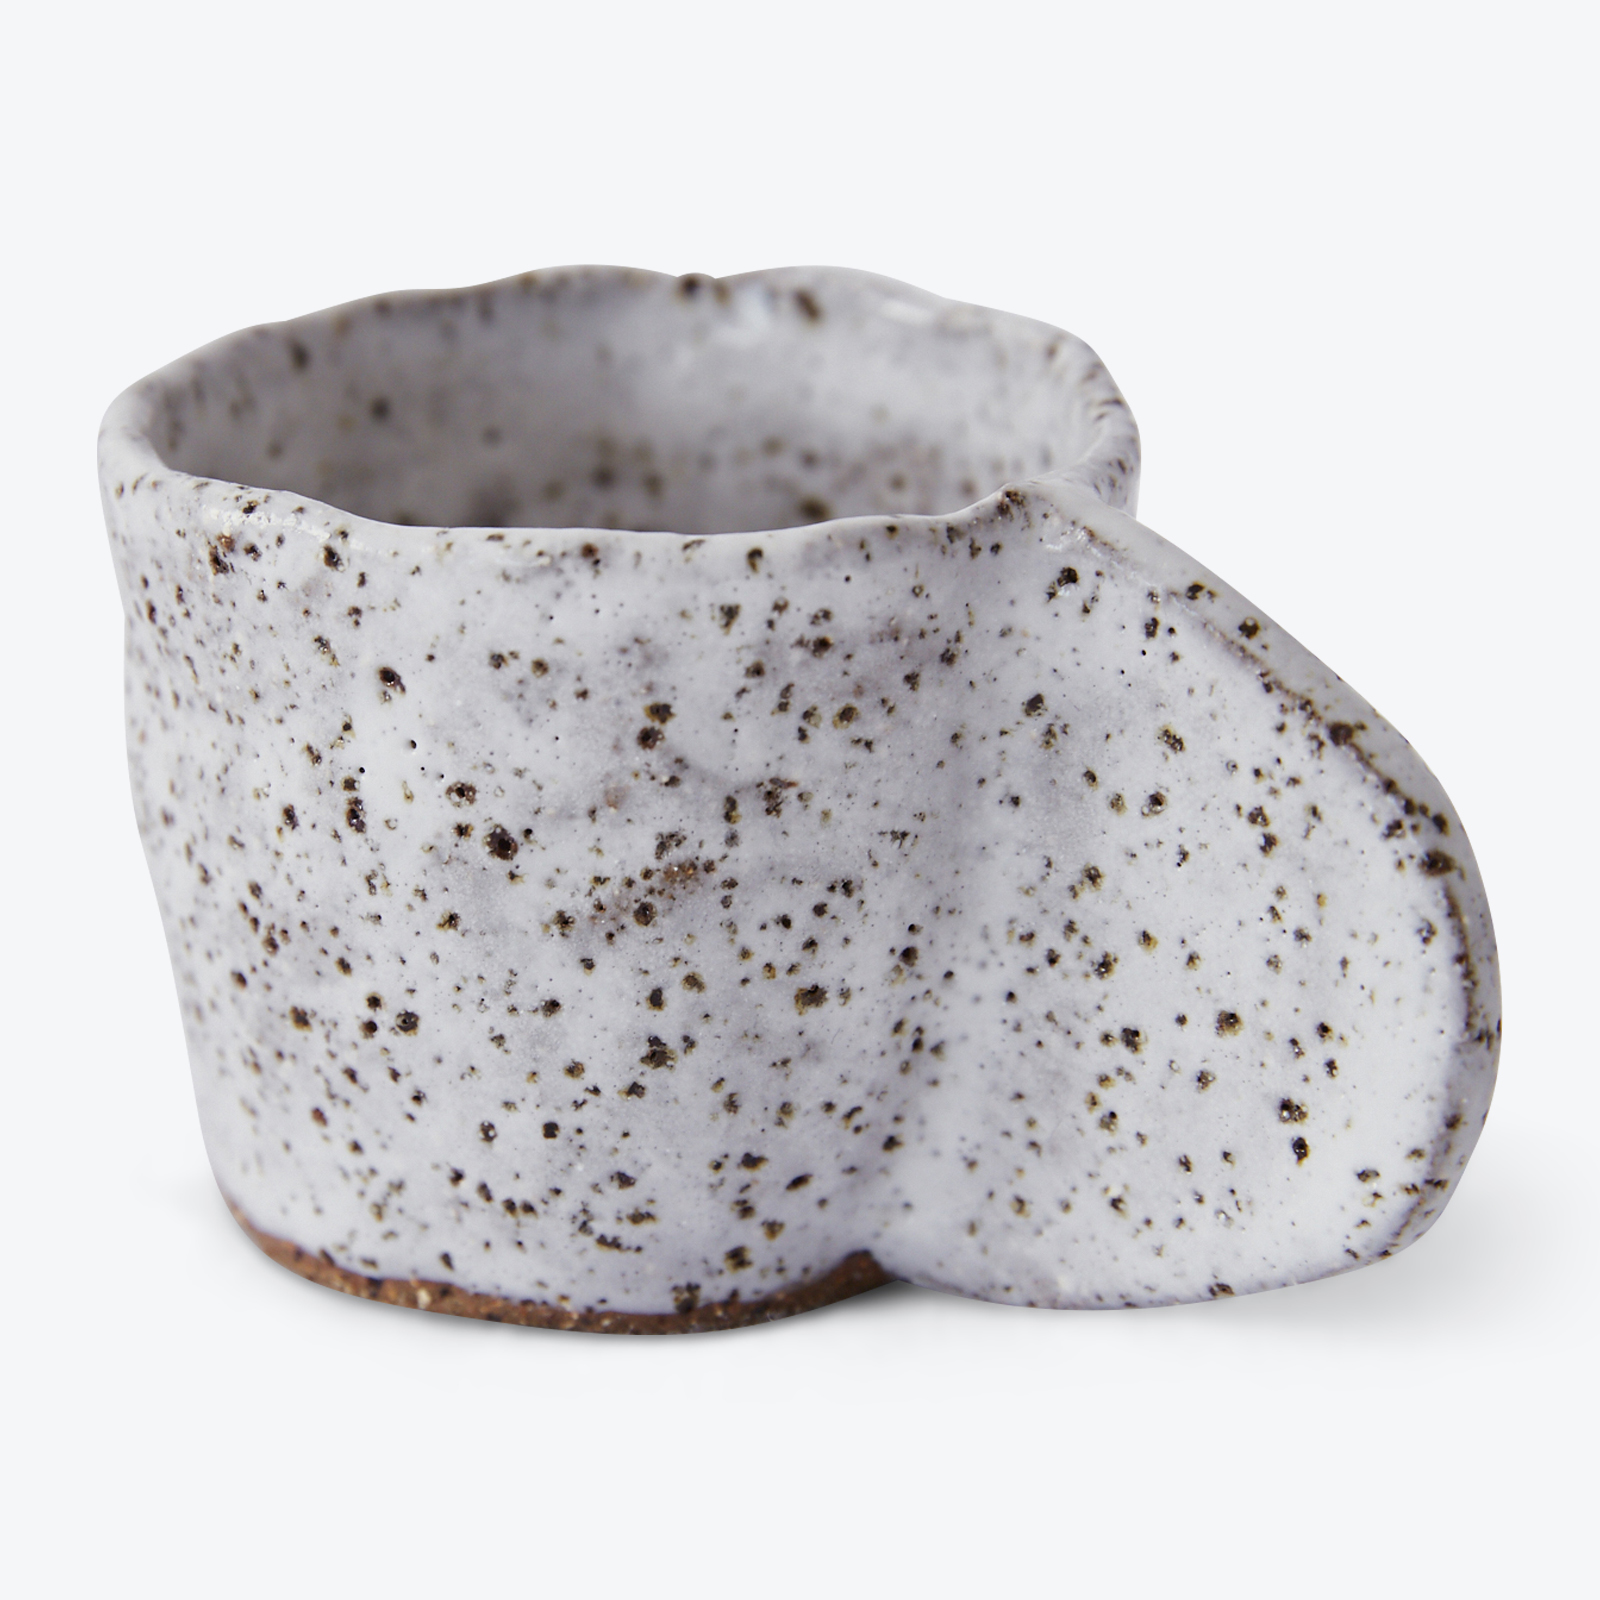 Crescent Espresso Mug In Speckled Stoneware By Gretel Corrie 01.jpg